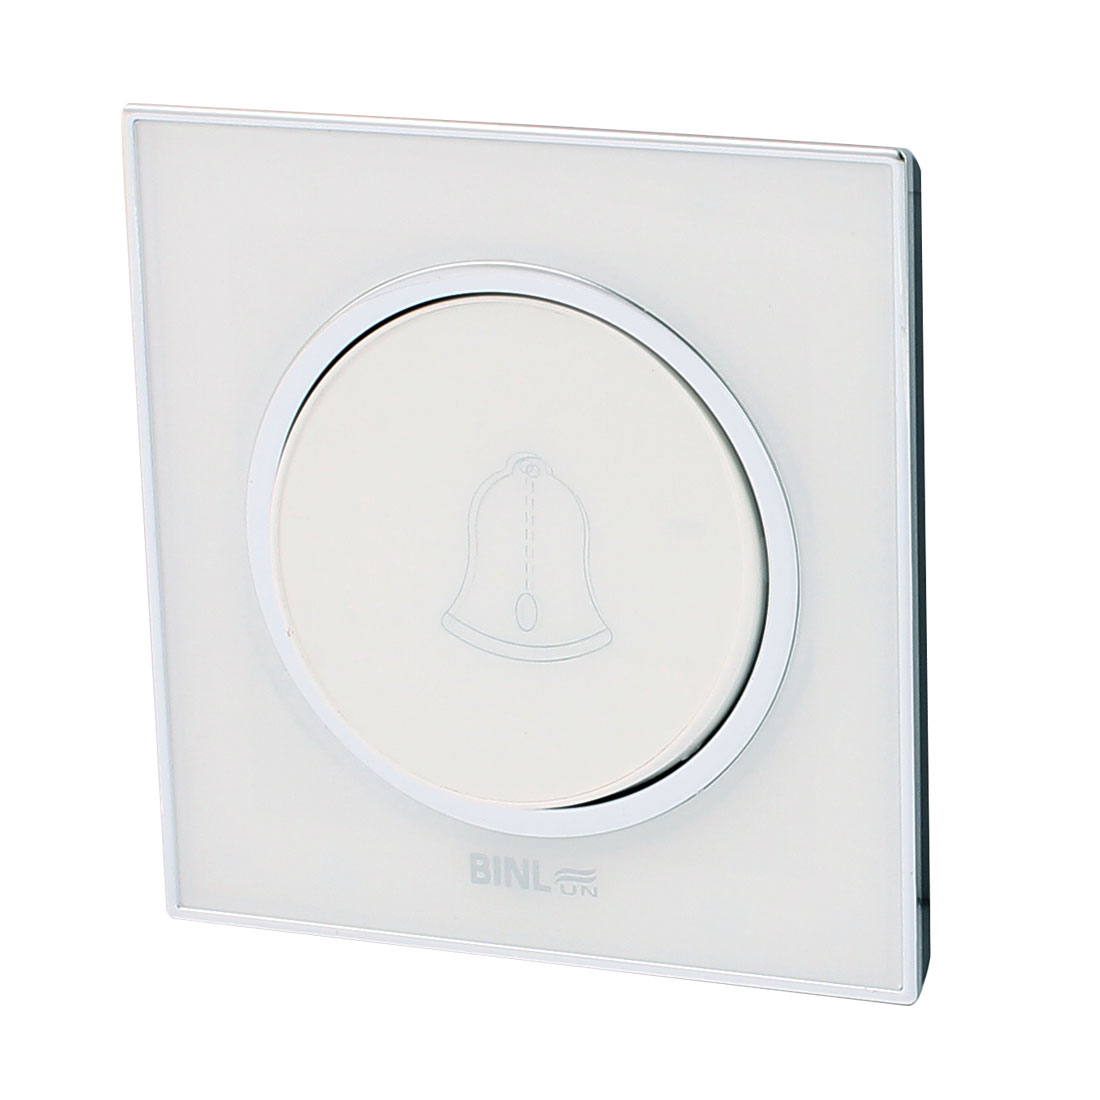 86 Type AC 220V 10A White Case Panel Wall Mounted Doorbell Switch 86 x 86mm